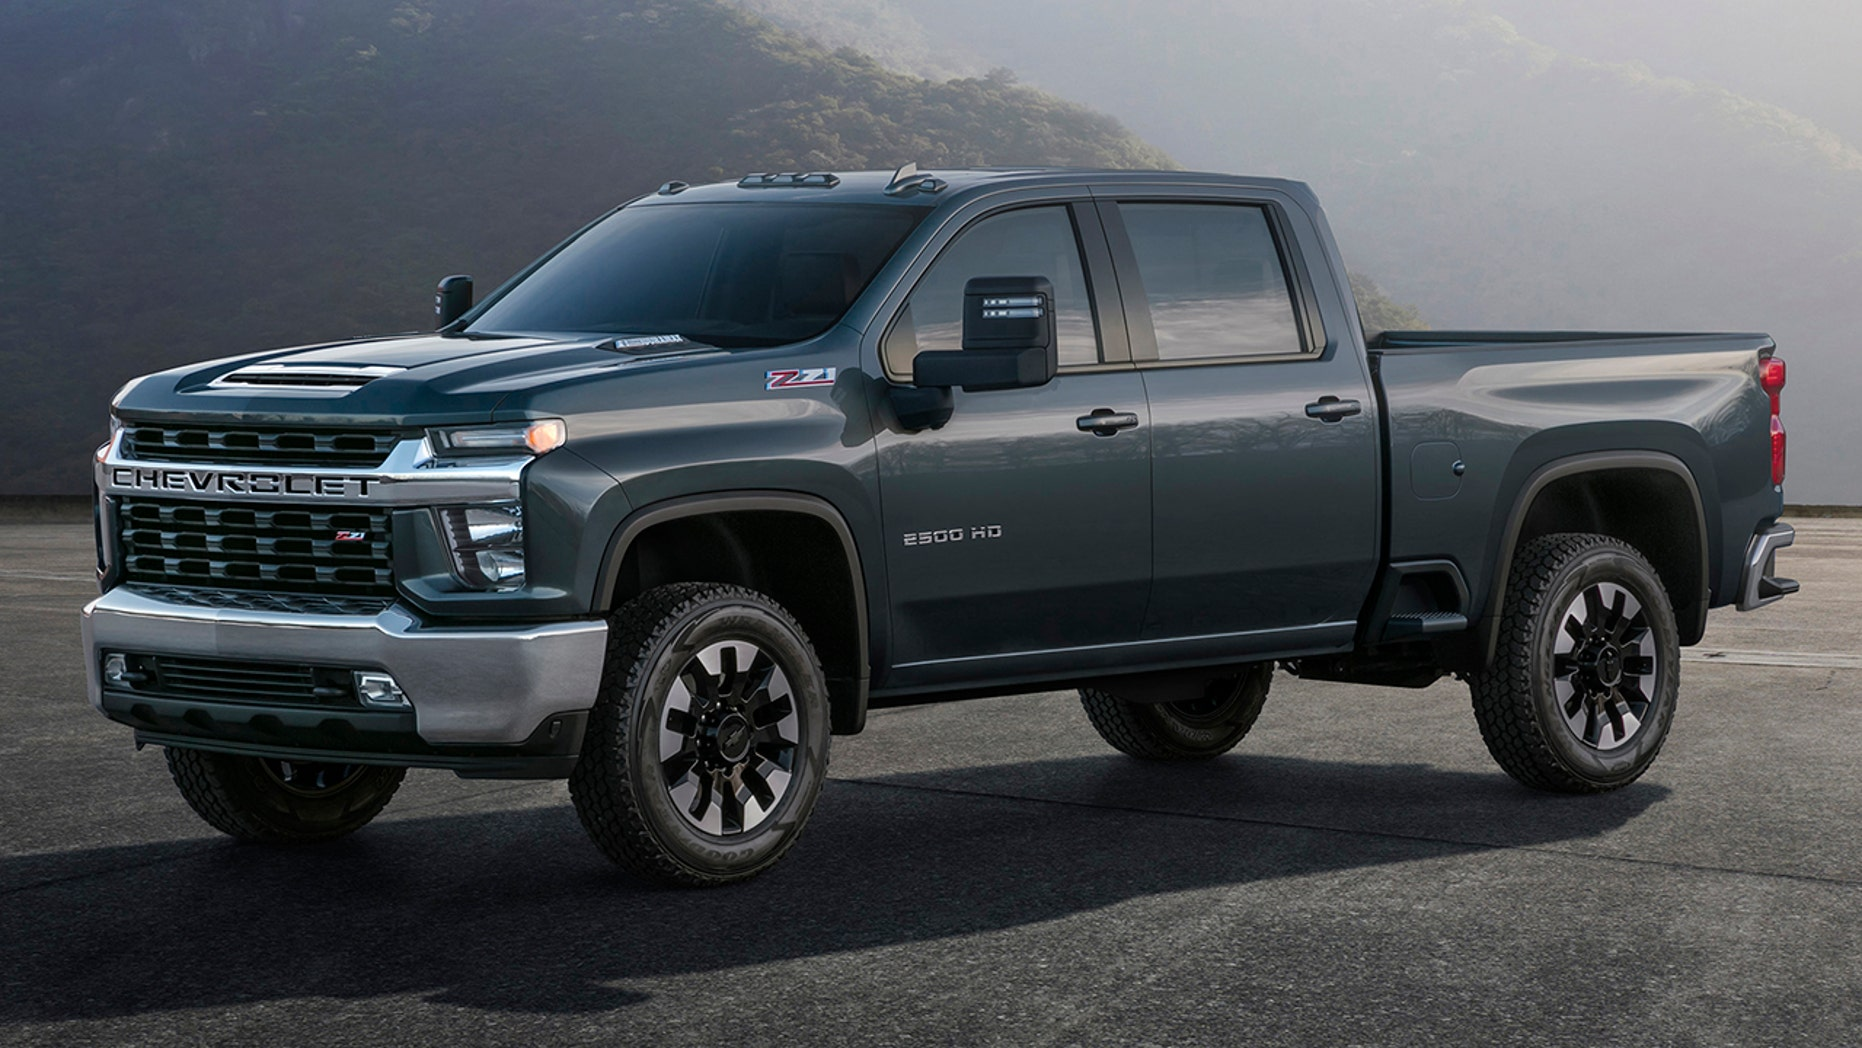 Chevy Silverado HD diverges from smaller sibling